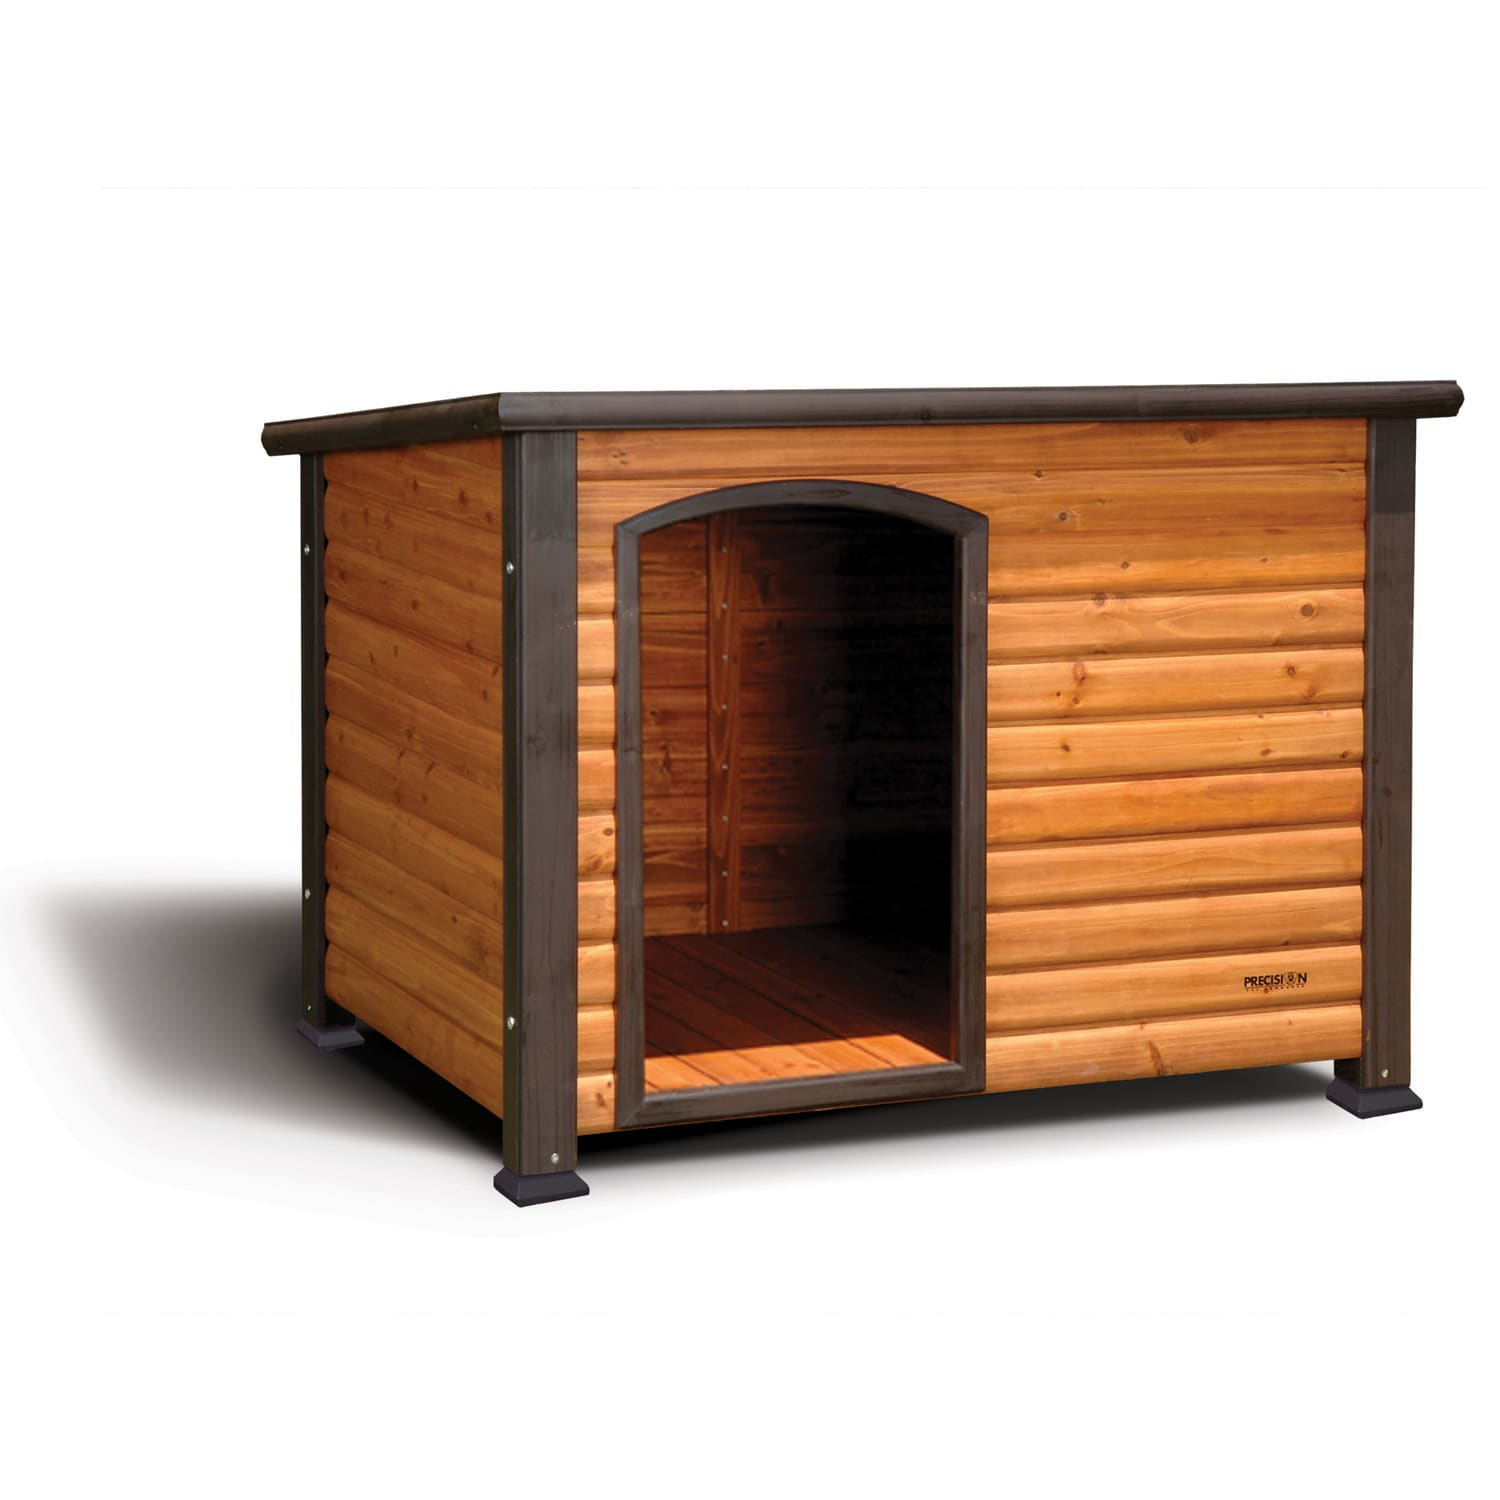 Comfort and function in one handsome dog house!Our Precision Pet Outback Log Cabin provides shelter during the winter and shade during the summer in a charming design that looks great in any backyard.Solid wood construction.Cedar colored stain on solid fir wood. Green stain on roof.Easily assembled in minutes.Raised floor helps keep your pet dry.